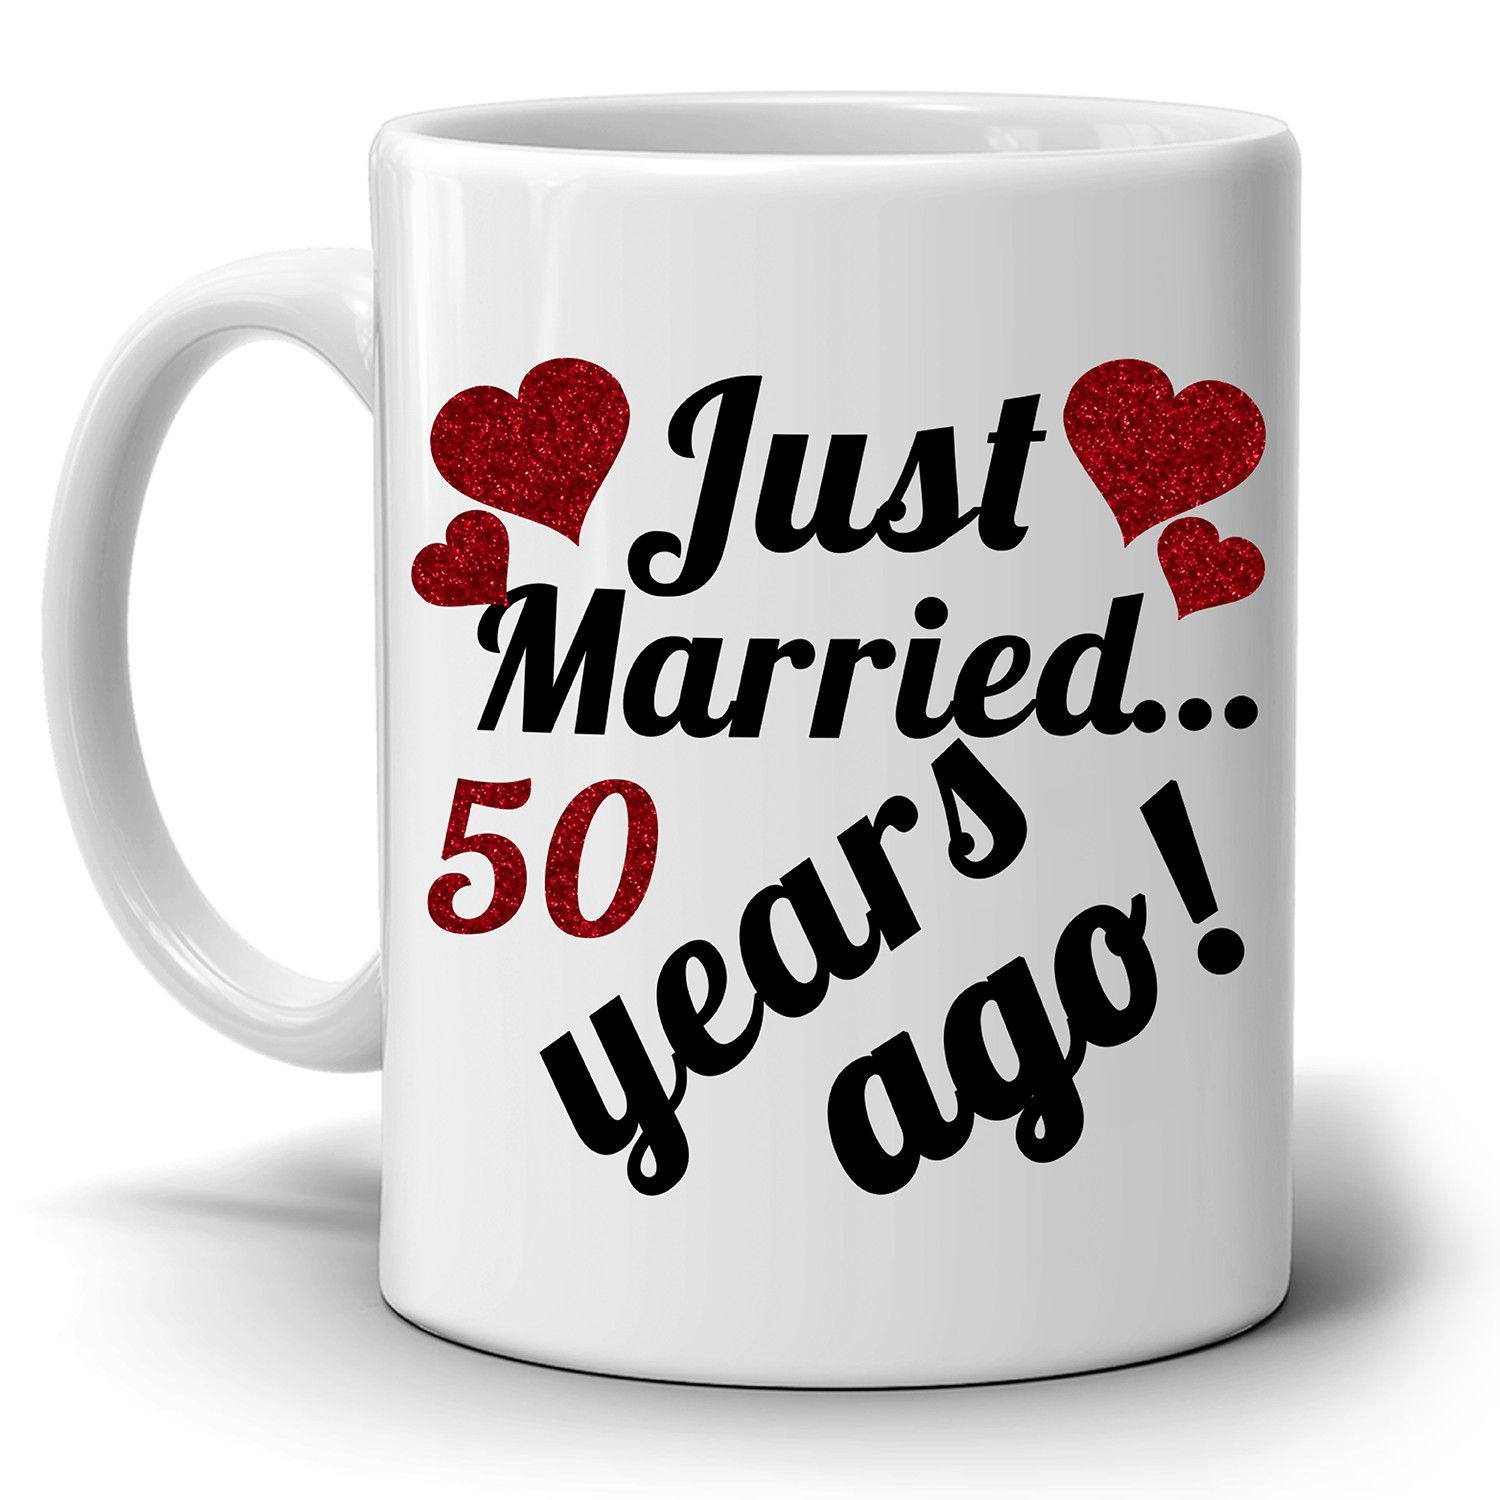 Personalized! Wedding Anniversary Gifts for Couples Just